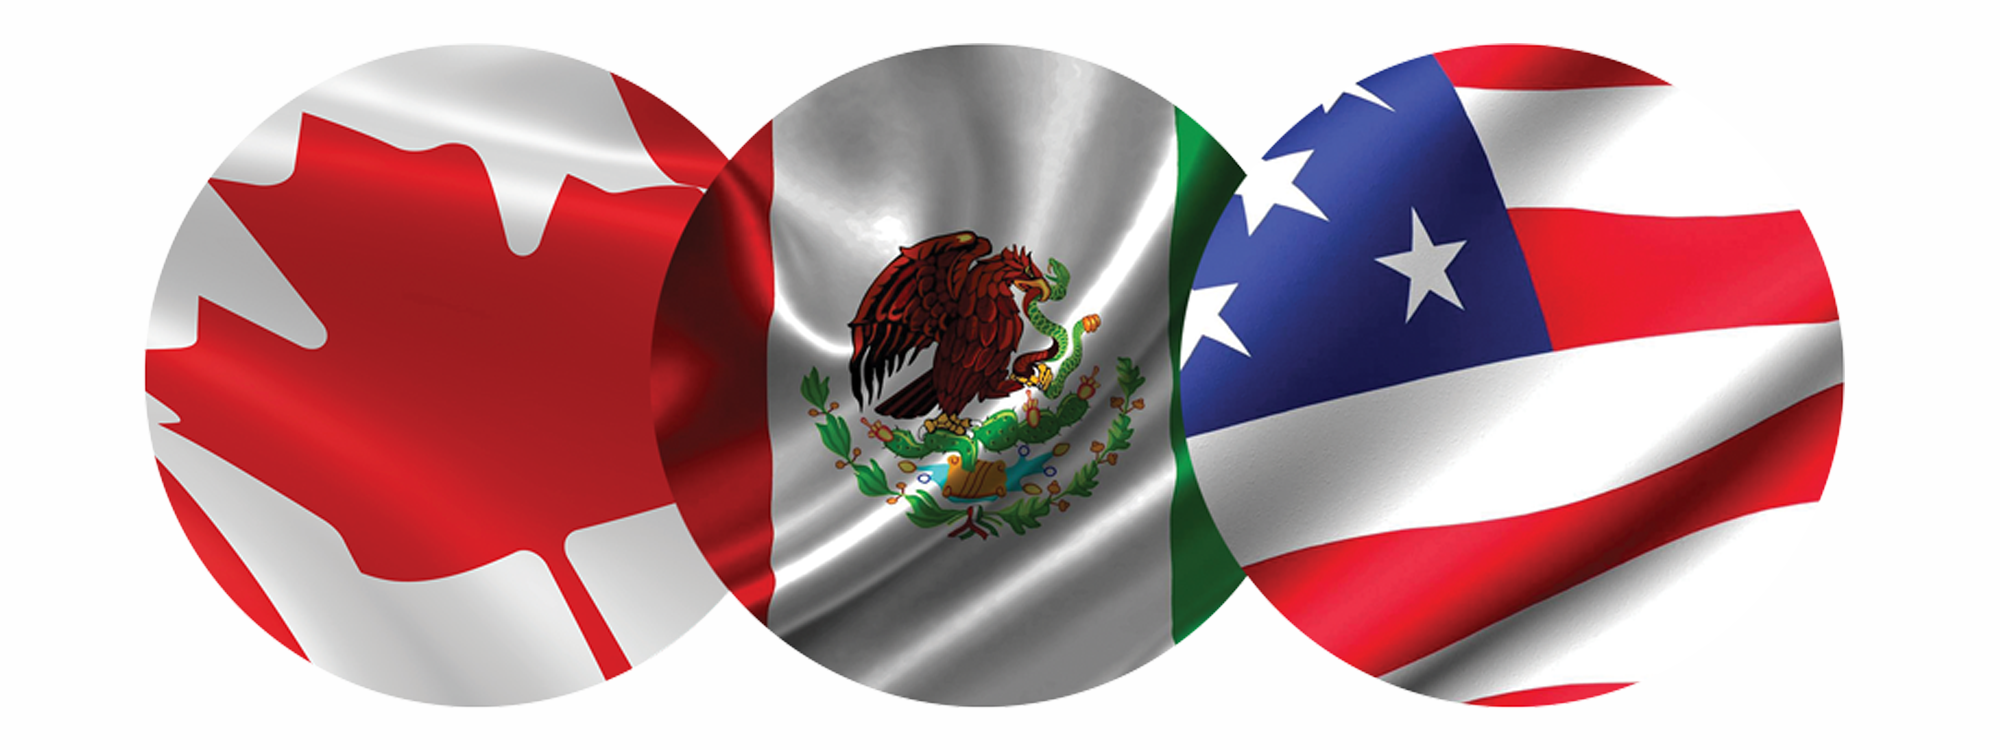 Canadian, Mexican and United States flags